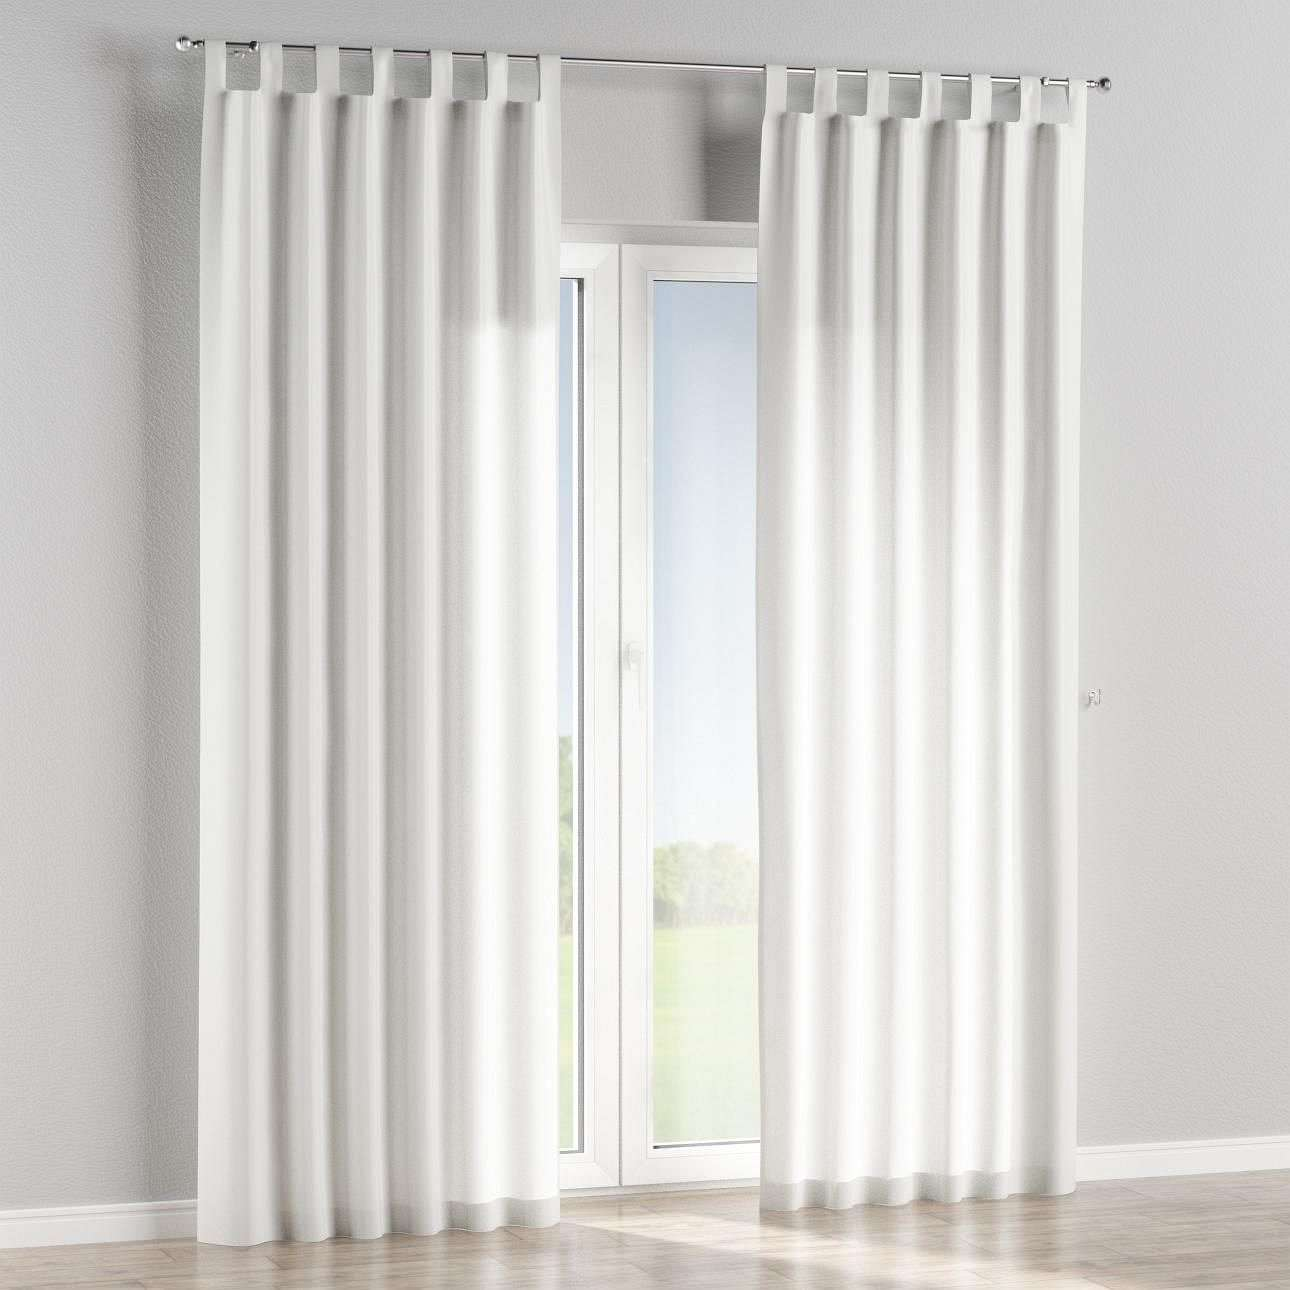 Tab top lined curtains in collection SALE, fabric: 138-17